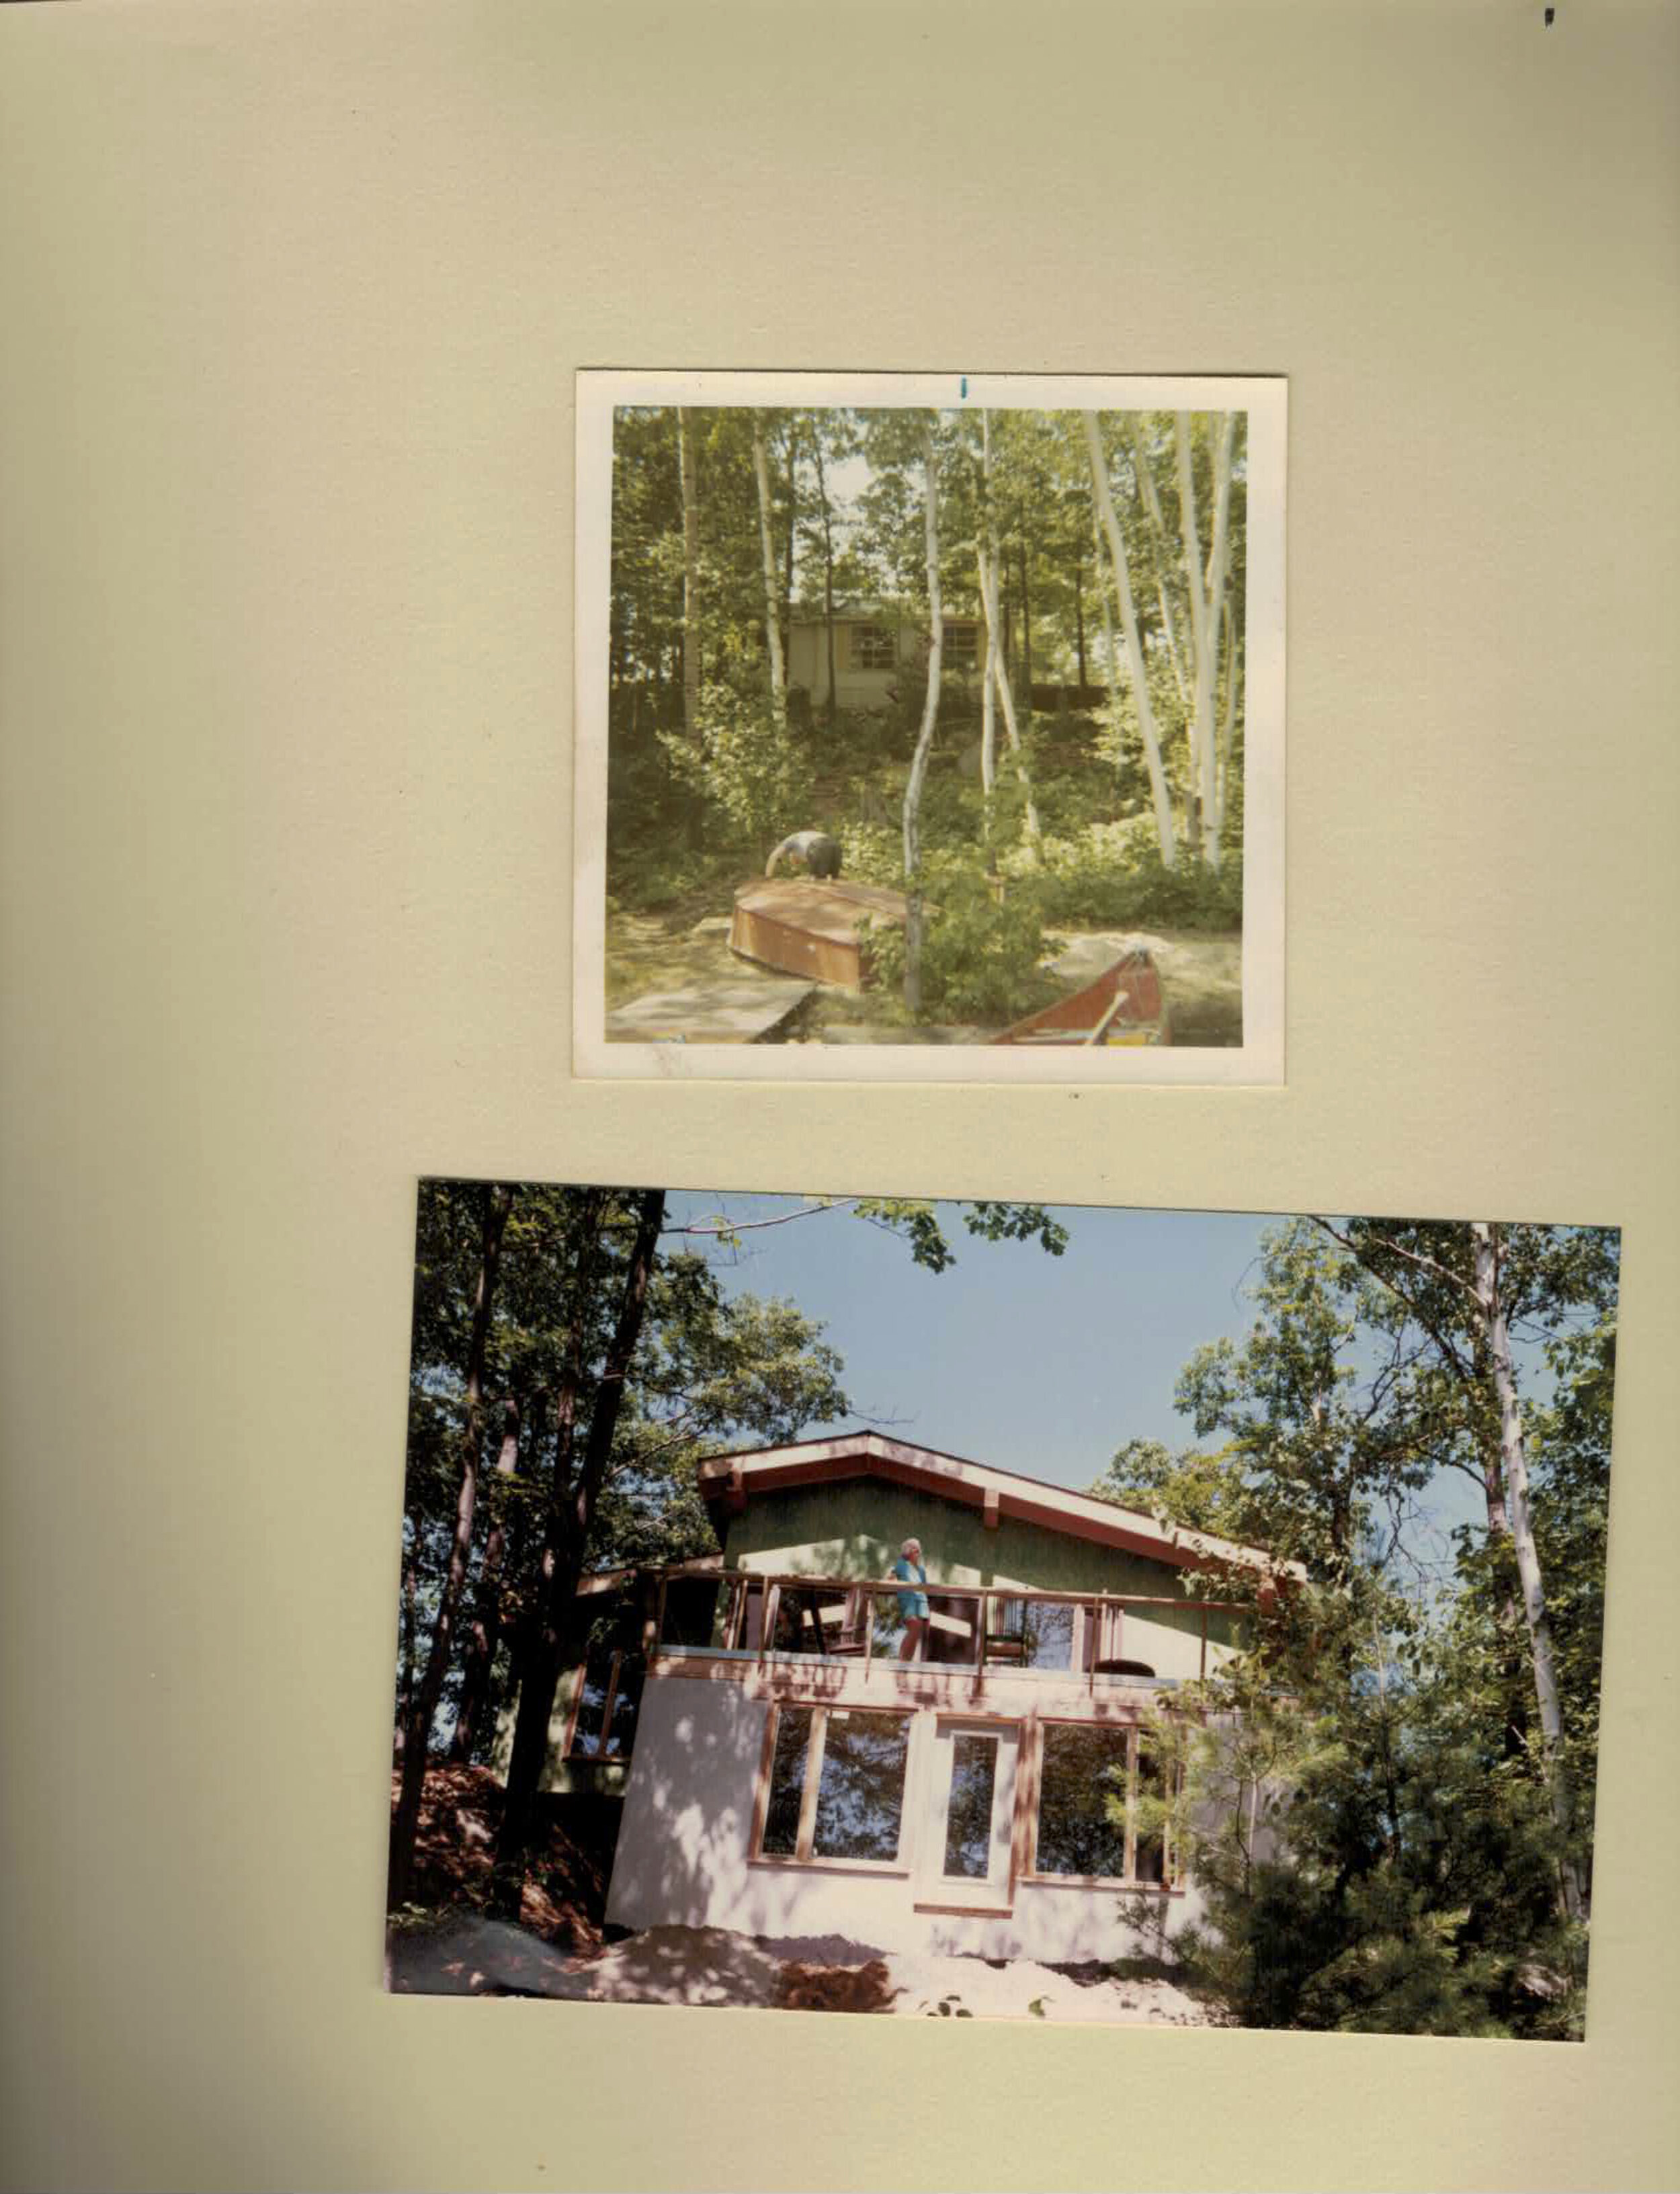 Coon, Nicole. Cottage in 1971 and 2003. 2019. Scan.